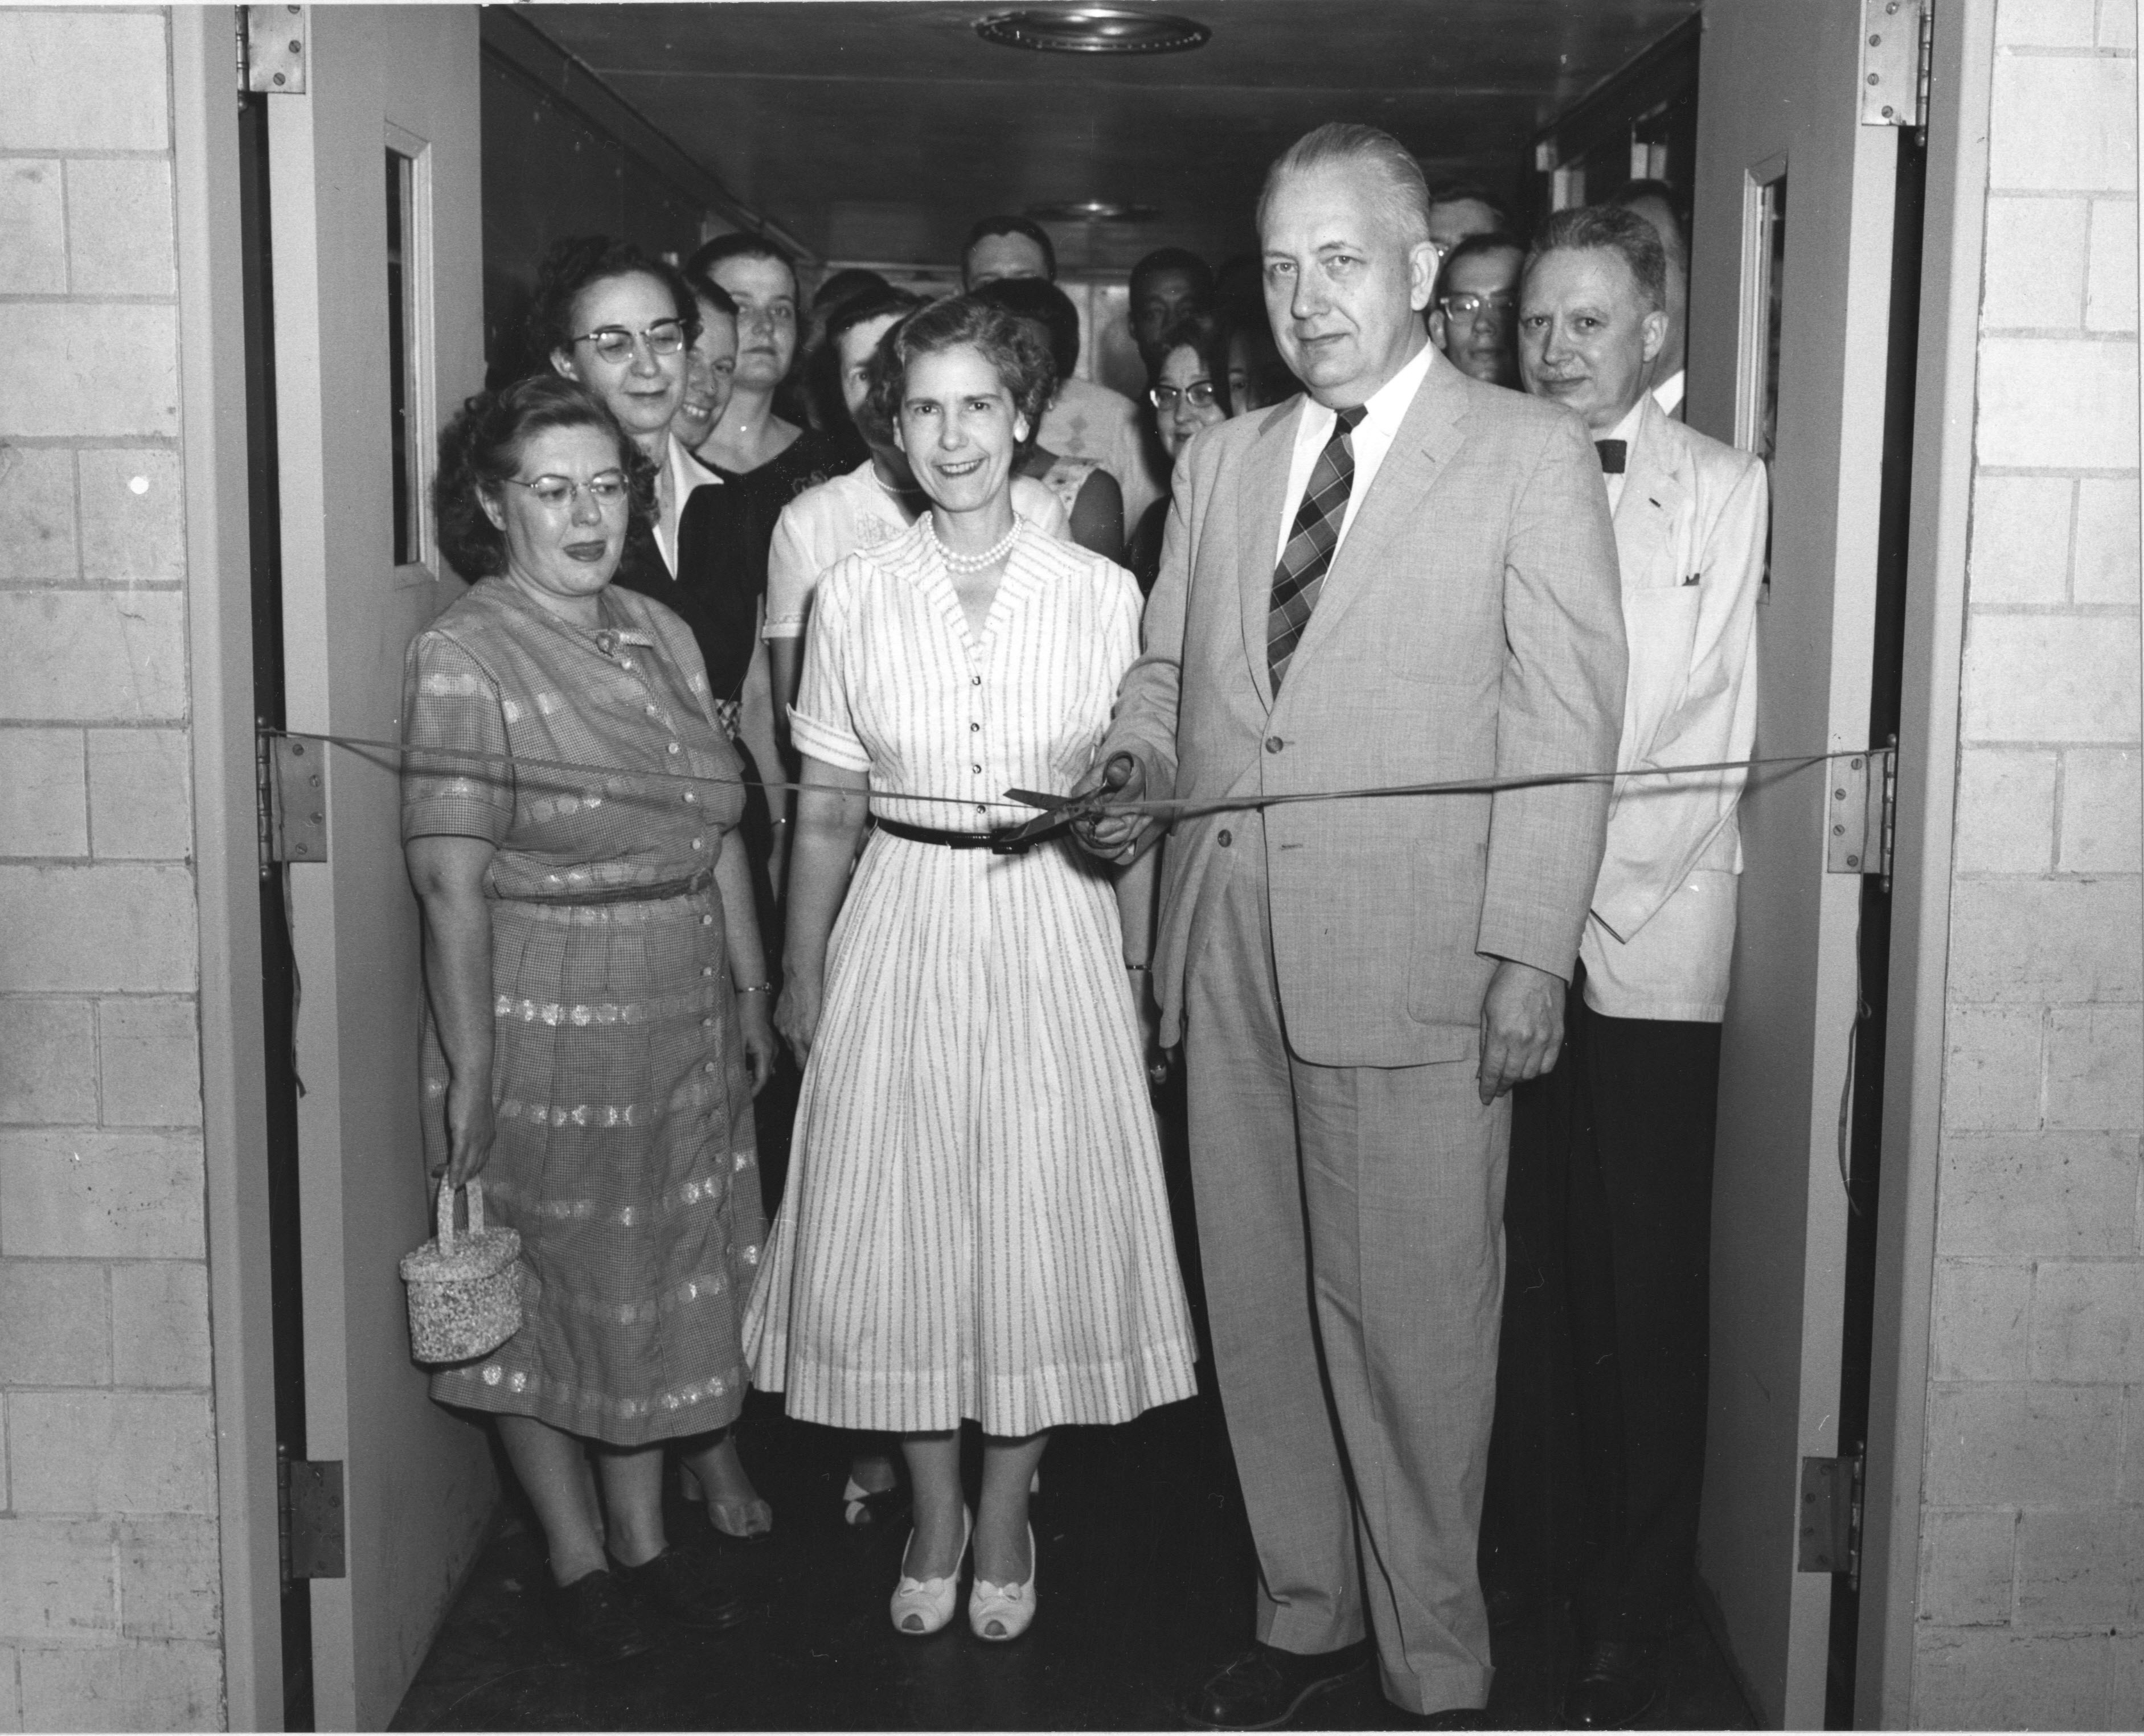 Opening of Civil War Branch Search Room, June 10, 1958. Division Chief Dallas Irvine cuts the ribbon. Branch Chief Victor Gondos at right. (National Archives,  64-NA-1741)